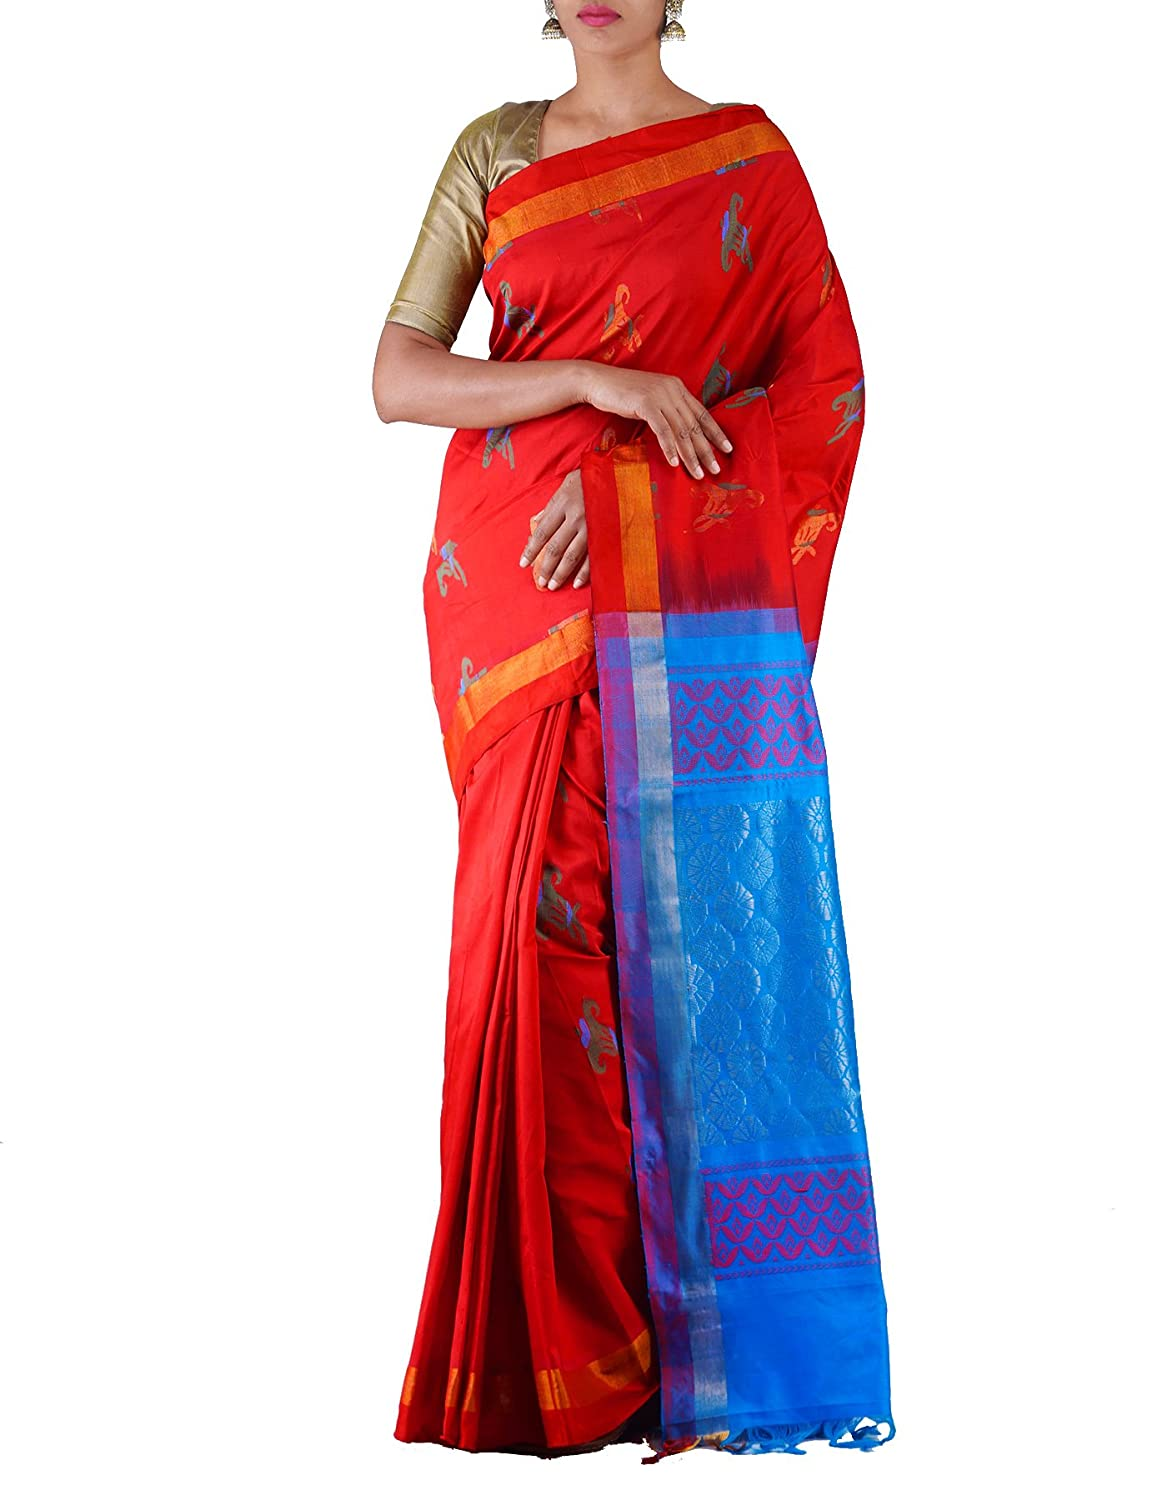 Unnati Silks Women's Silk Cotton Saree With Blouse Piece at Rs.1500